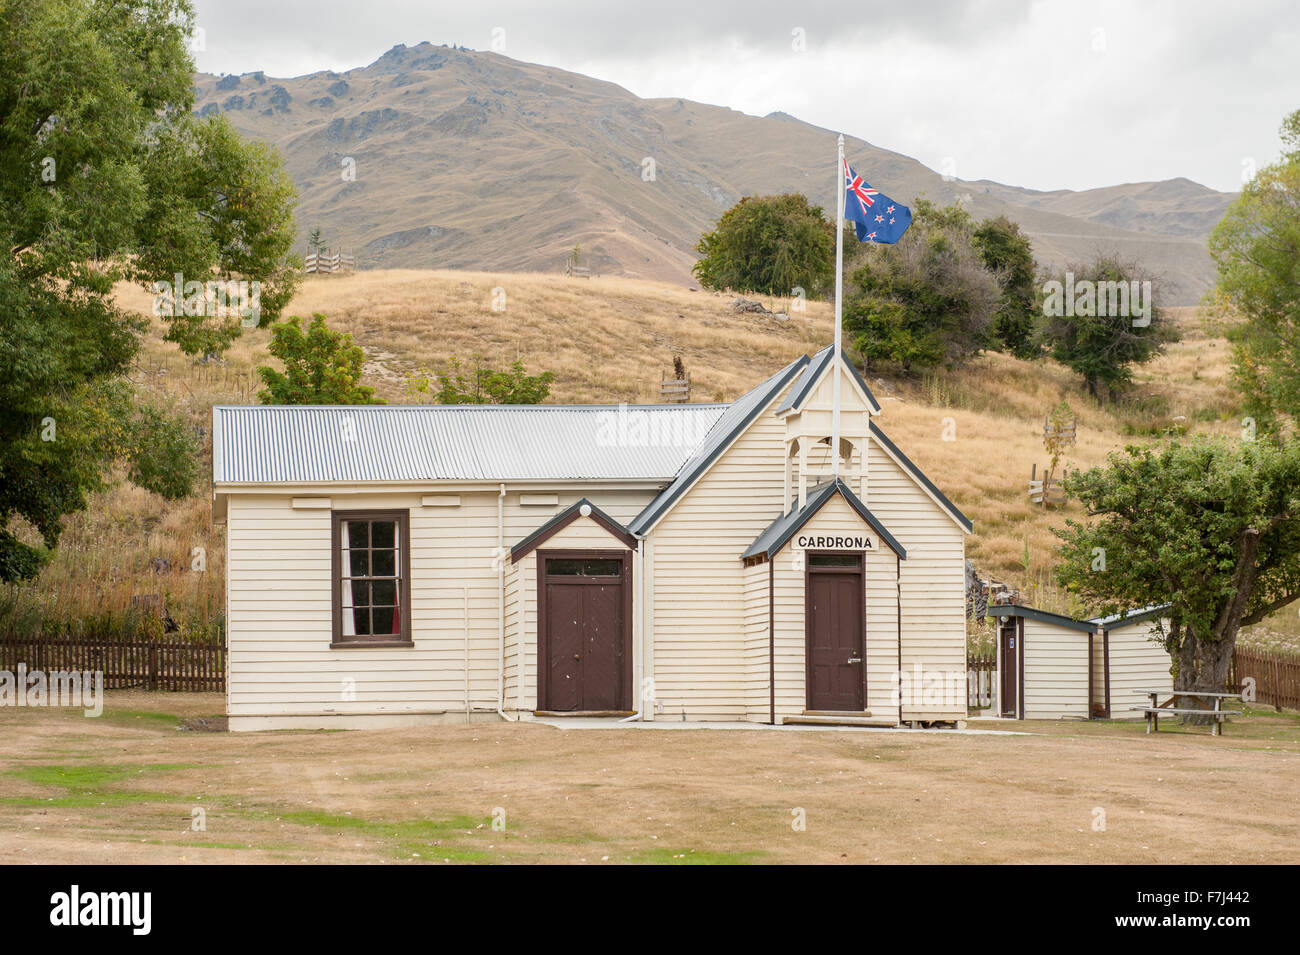 Vintage church in scenic Cardrona, Central Otago, South Island, New Zealand. - Stock Image